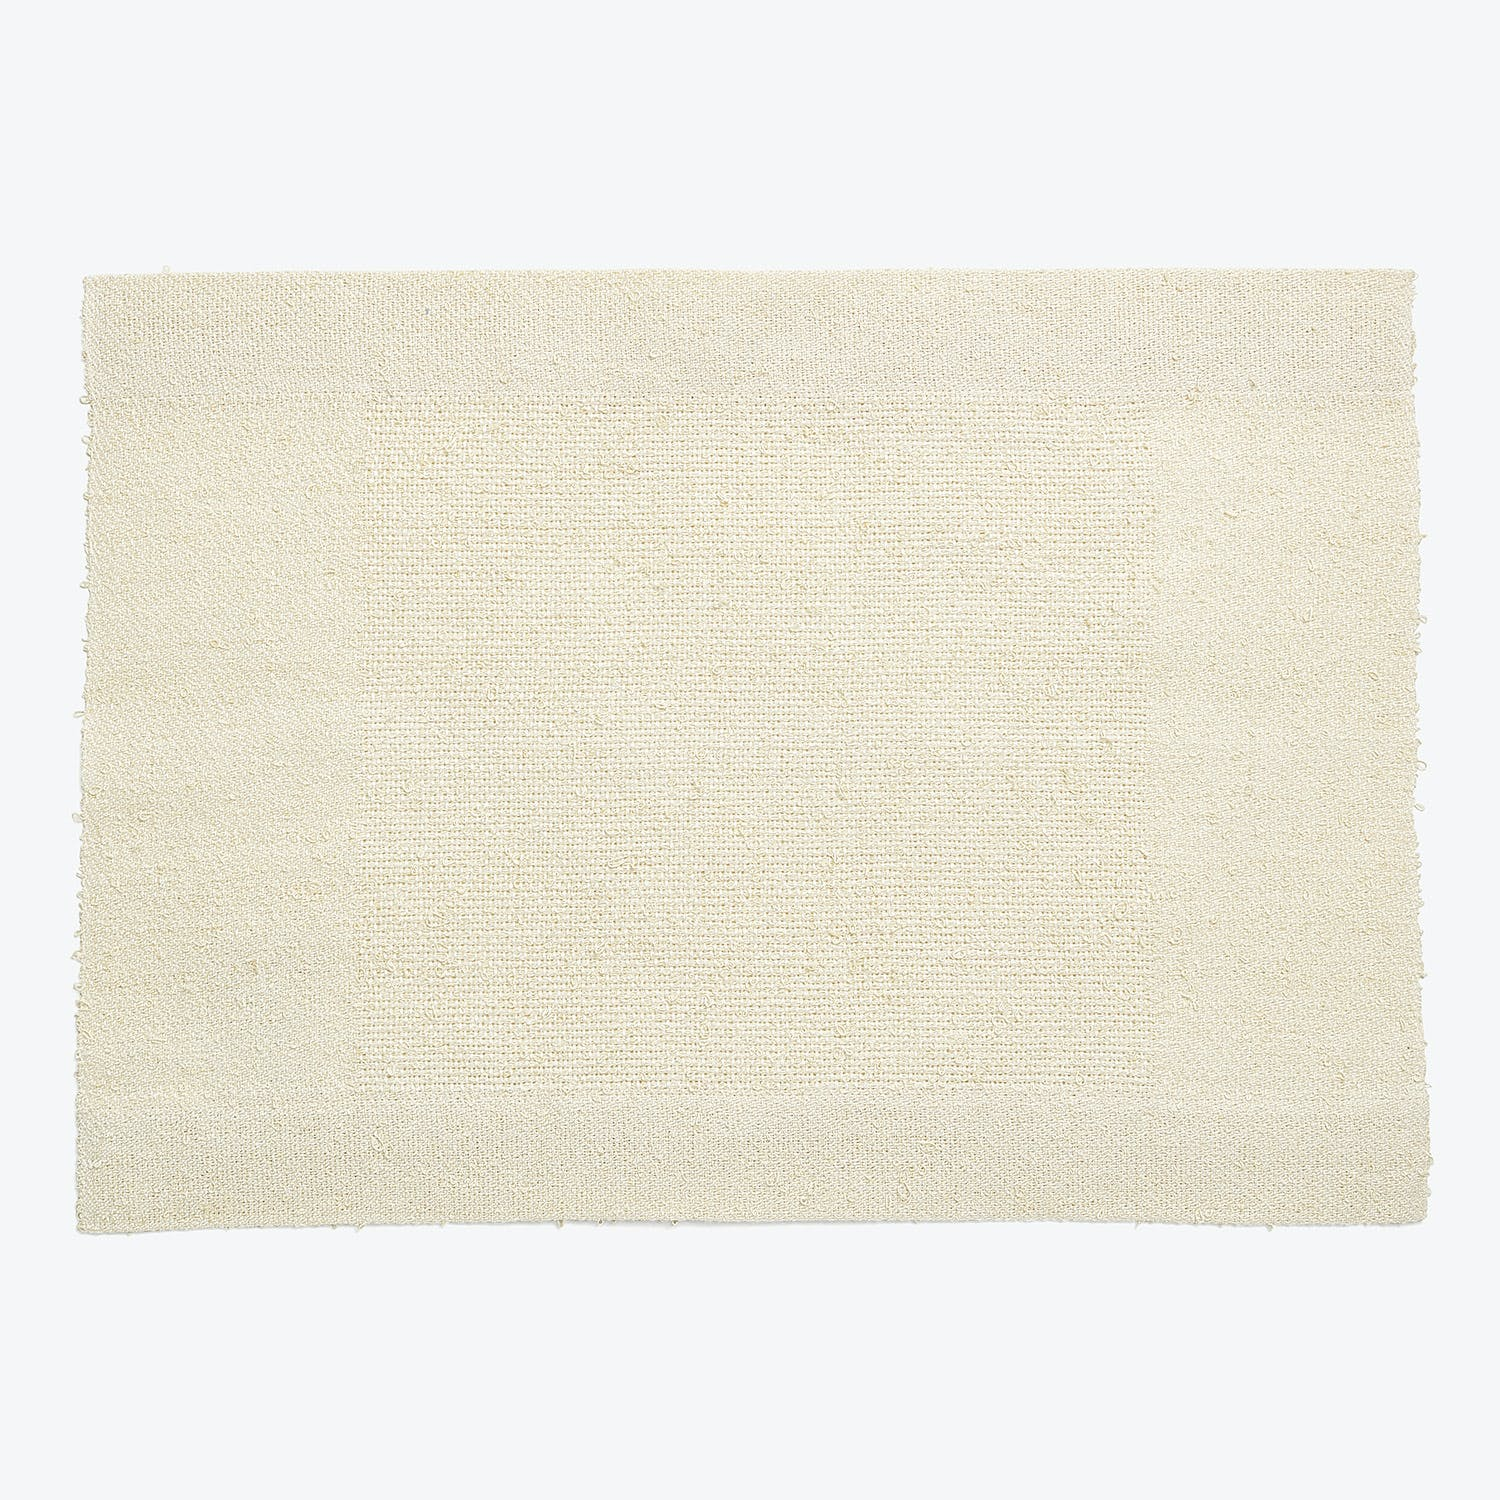 Studio Natural Aina Linen Placemat White